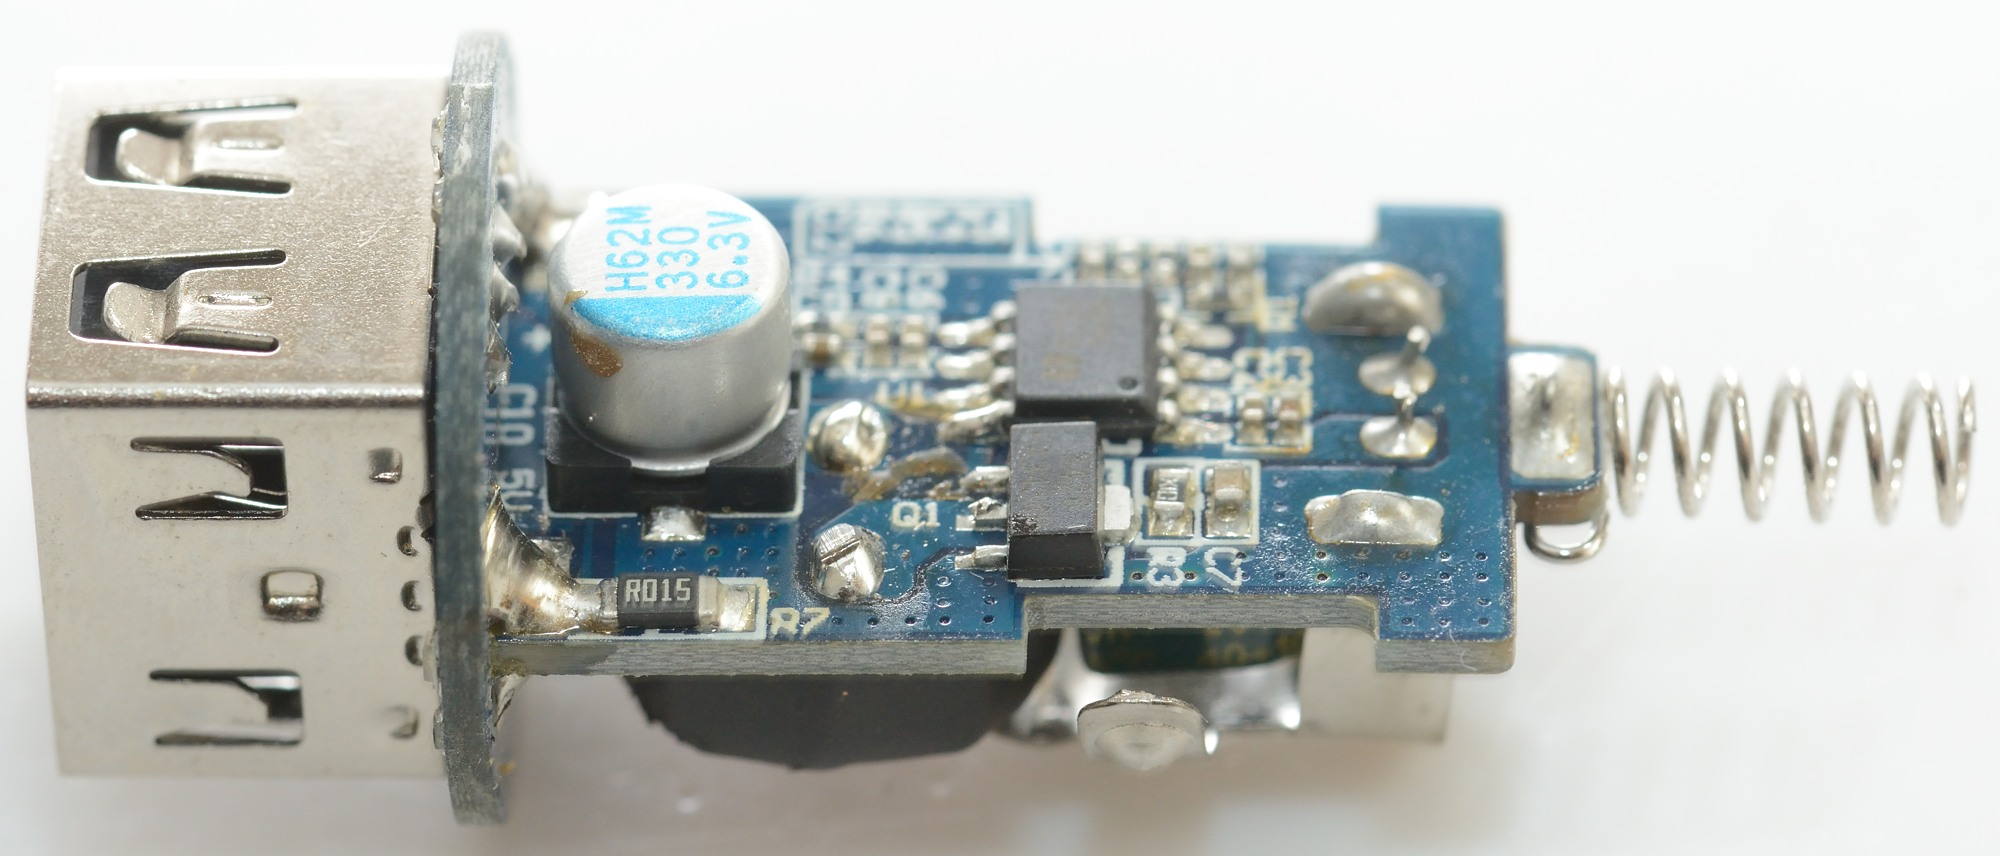 hight resolution of on the round circuit board is a small ic this is the chip for automatic coding of the usb outputs